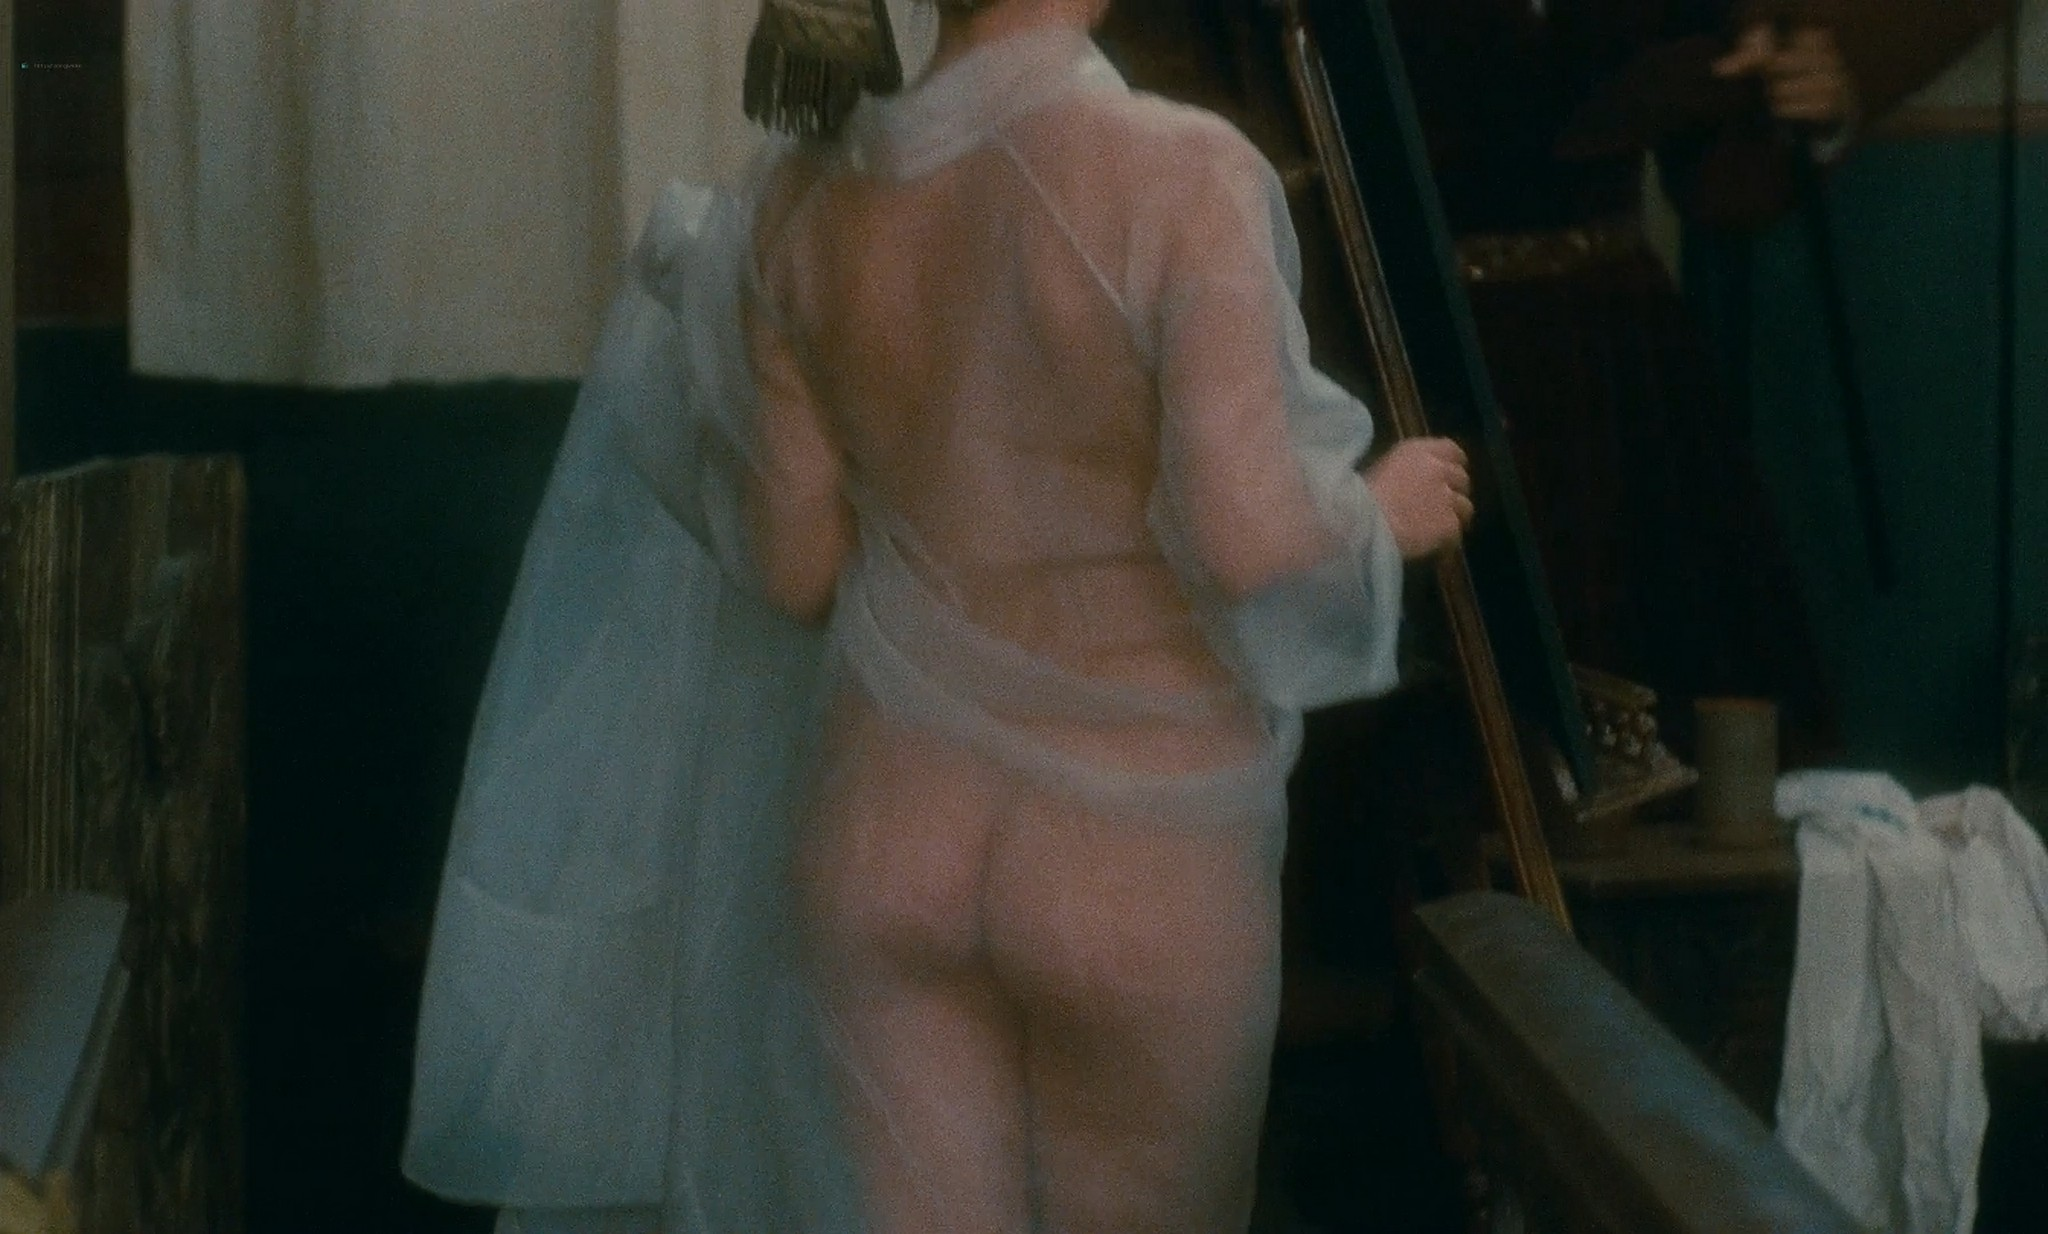 Marina Pierro nude sex Gaelle Legrand and Pascale Christophe nude bush and sex Les heroines du mal 1979 1080p BluRay REMUX 5